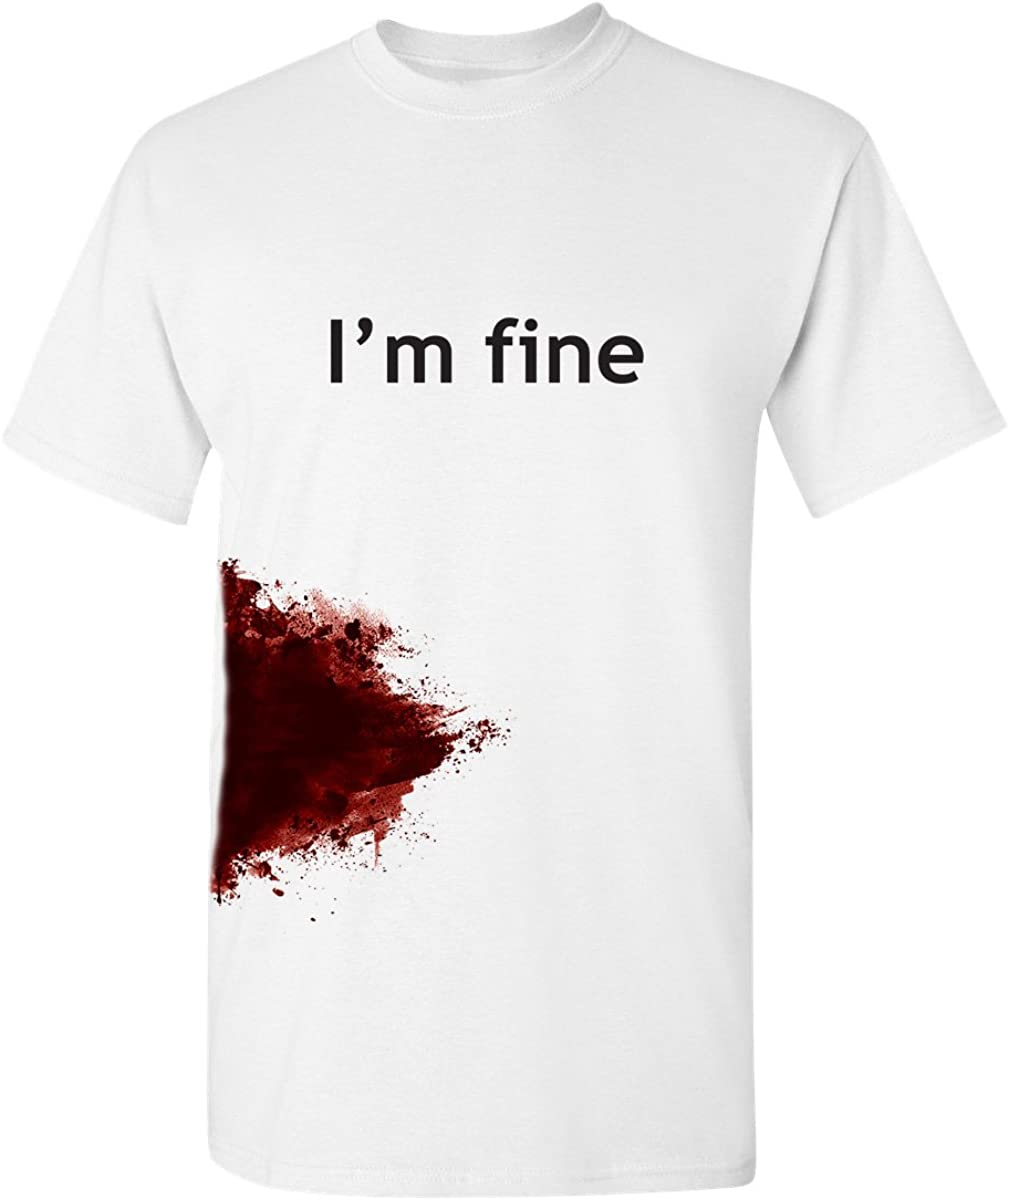 I'm Fine Graphic Novelty Sarcastic Movie Slash Humor Zombie Funny T Shirt